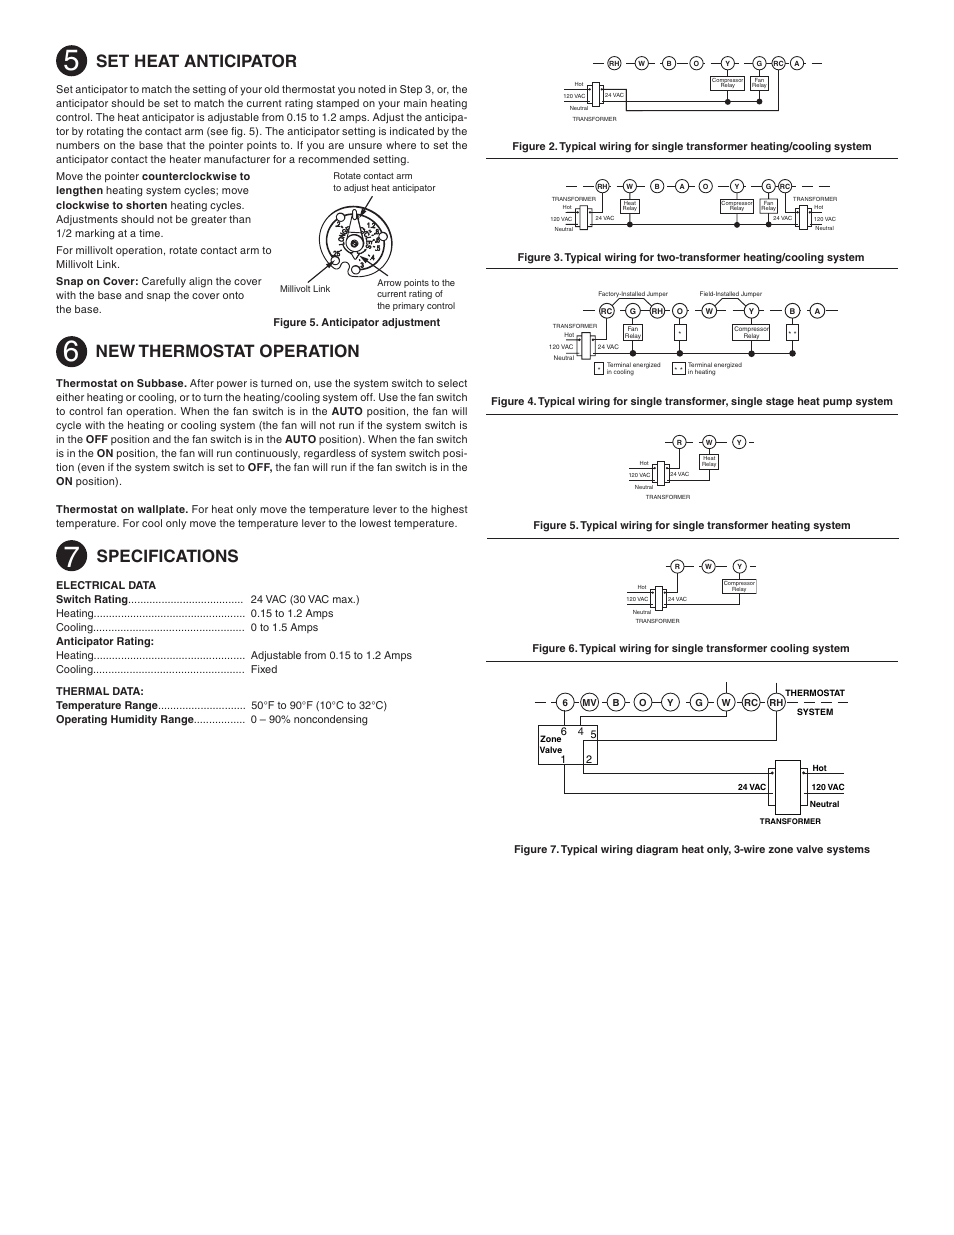 white rodgers 1e56n 444 page2 set heat anticipator, new thermostat operation, specifications white rodgers 1f56n-444 wiring diagram at honlapkeszites.co